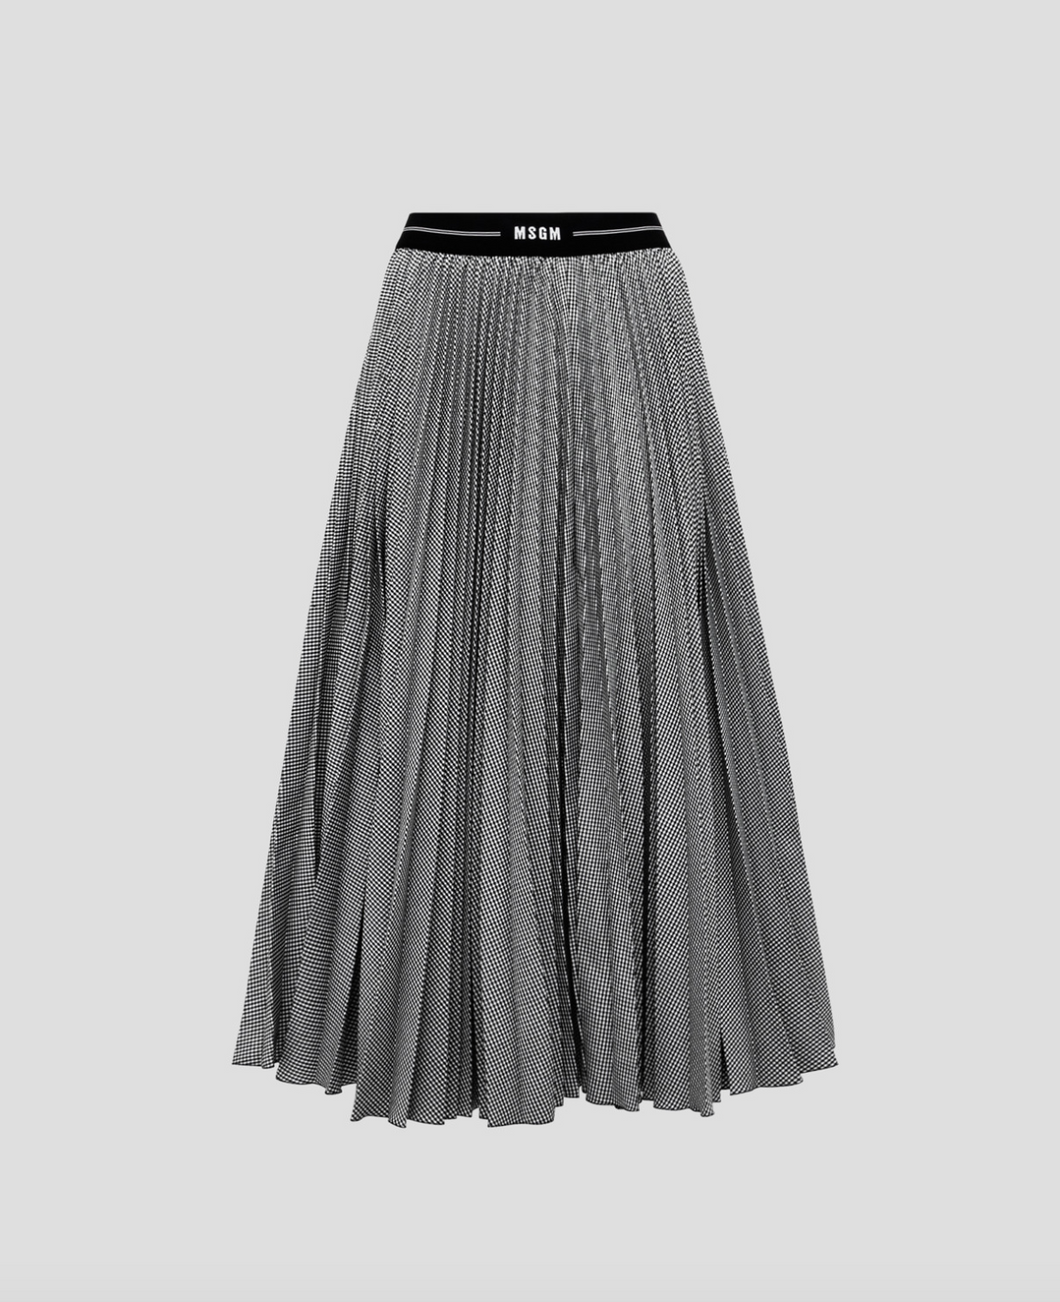 Micro Houndstooth Pleated Skirt - Black/White